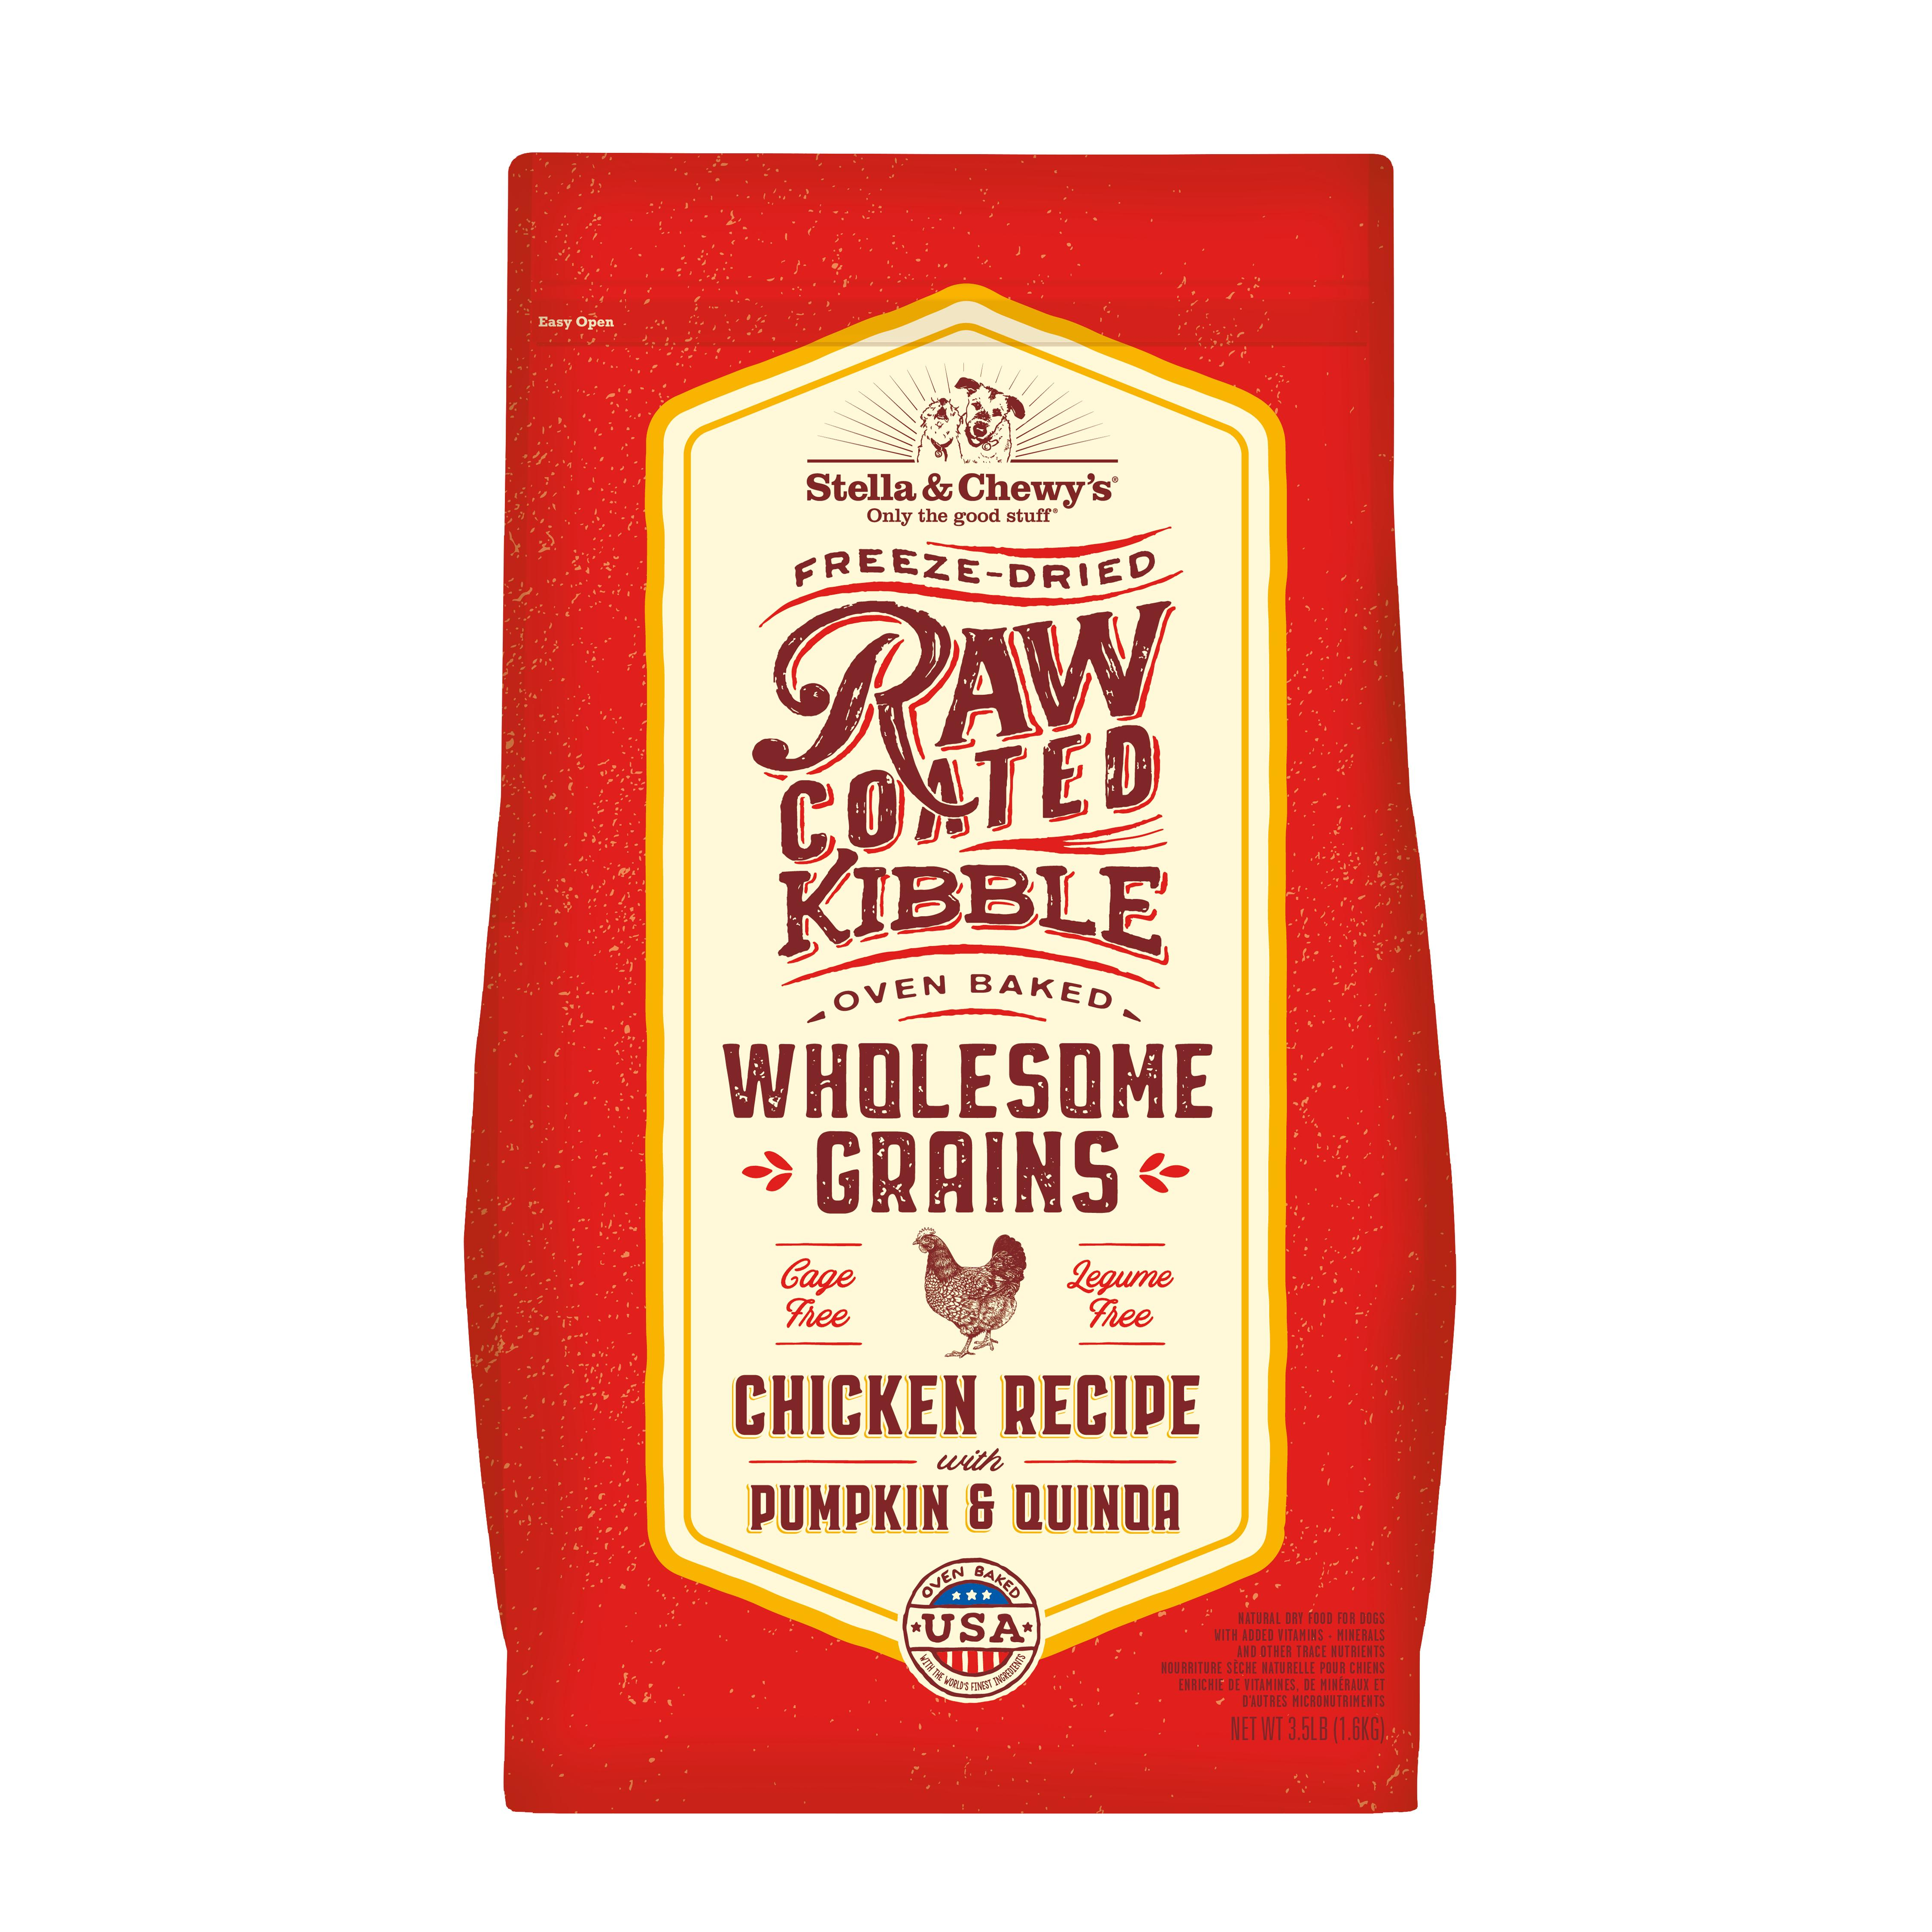 Stella & Chewy's Raw Coated Kibble Wholesome Grains Chicken, Pumpkin & Quinoa Dry Dog Food, 22-lb